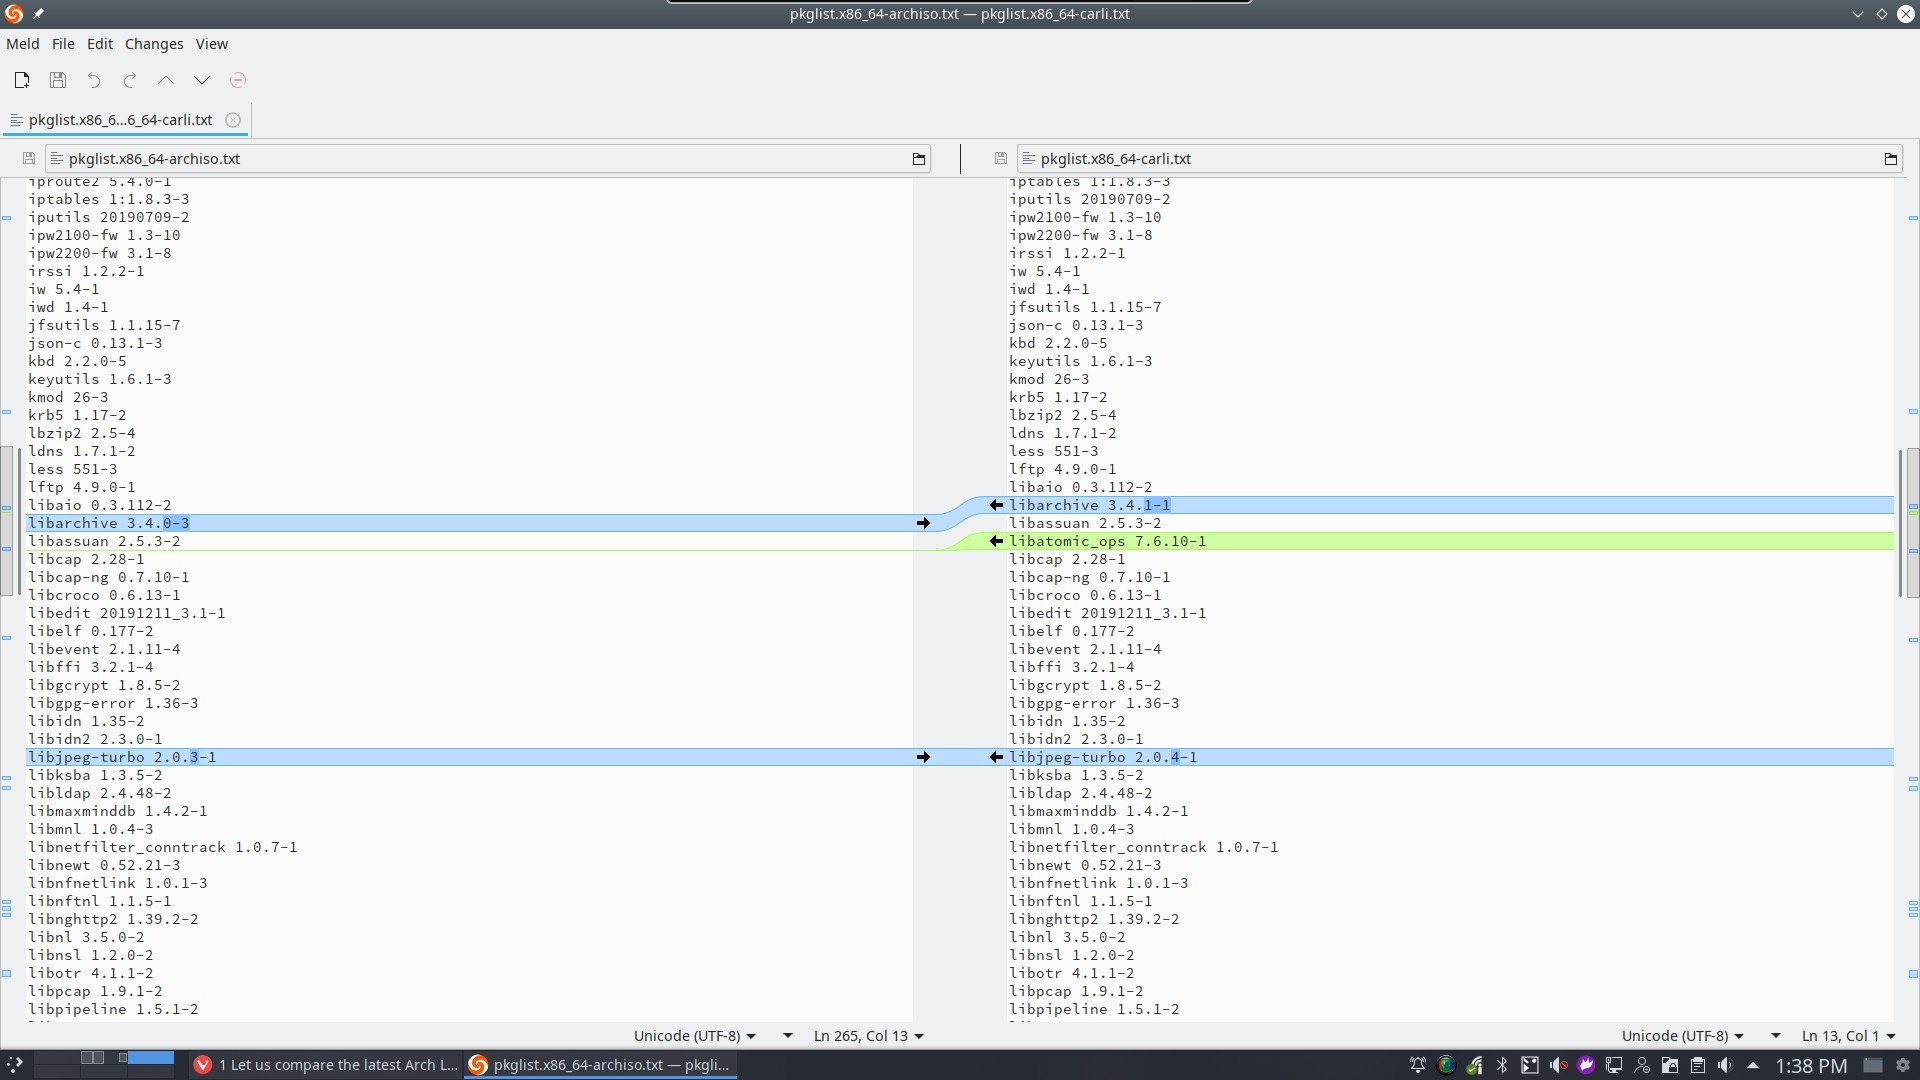 1 Let us compare the latest Arch Linux release with Carli